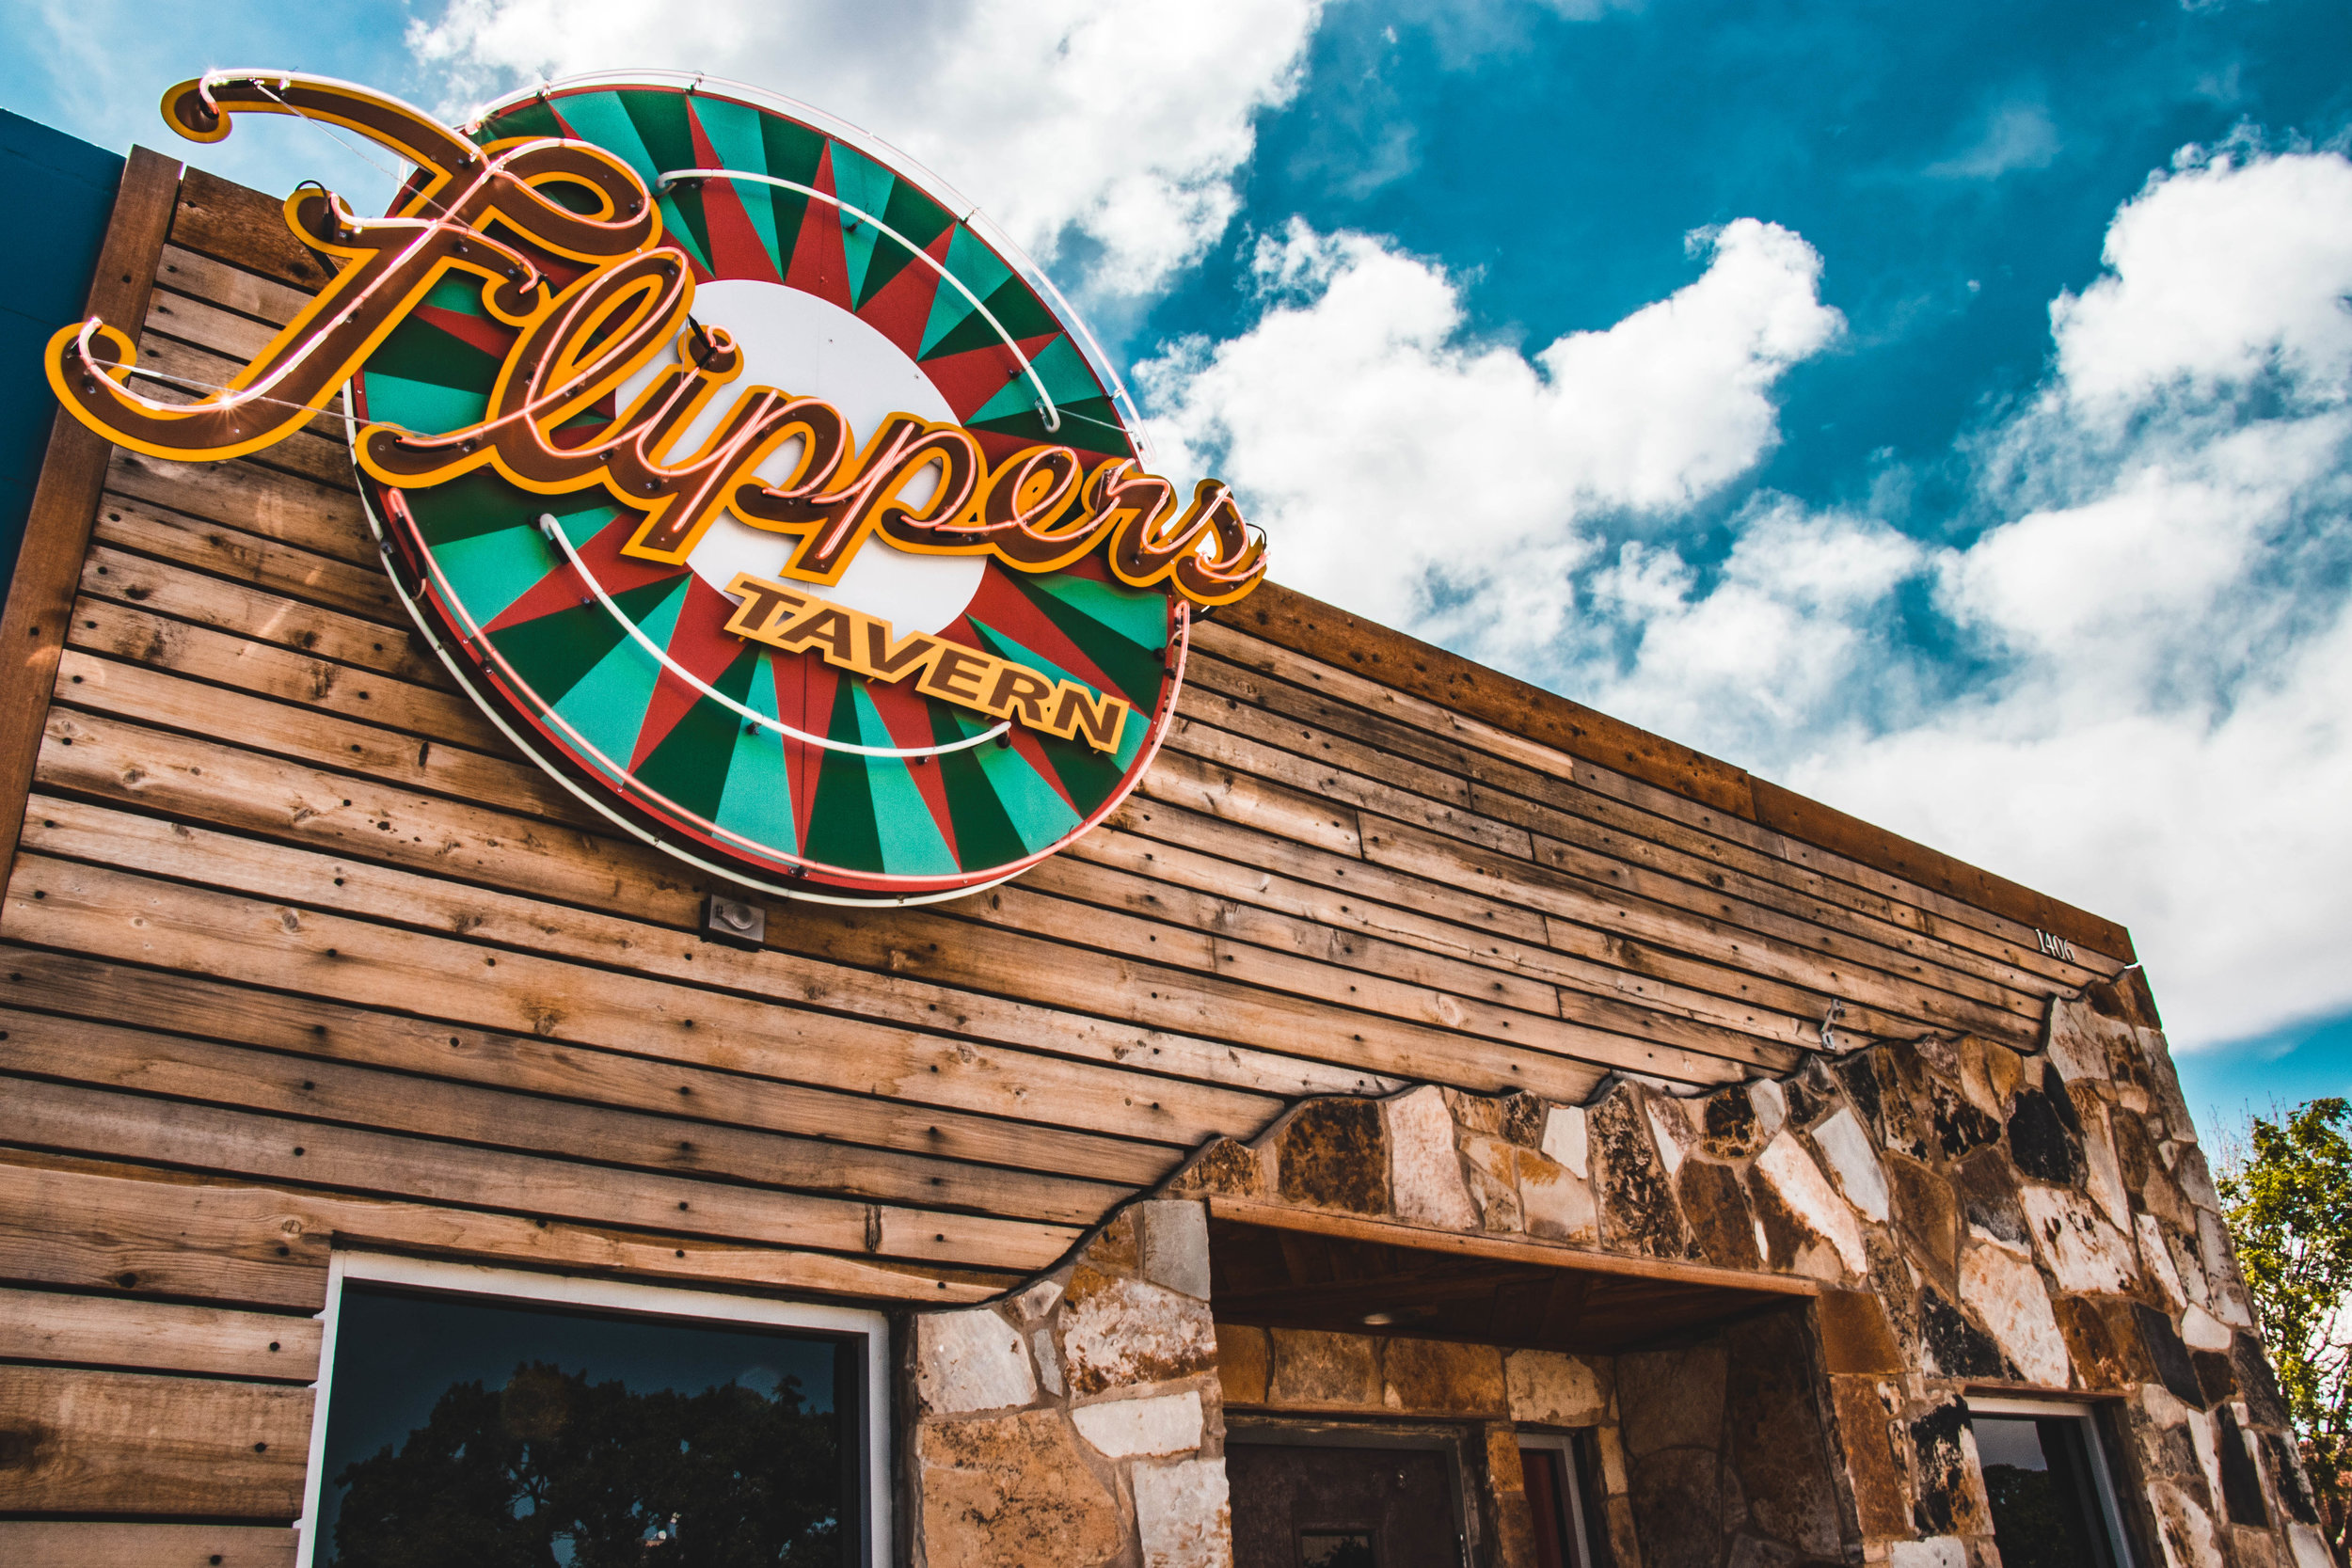 About Flippers Tavern - Pinball, Beer, and Brats are the name of the game. One of Lubbock's most eclectic dive spots you can actually find something for anyone from their classic pinball machines for the kids, killer brunch on Sundays, and even vegan options!